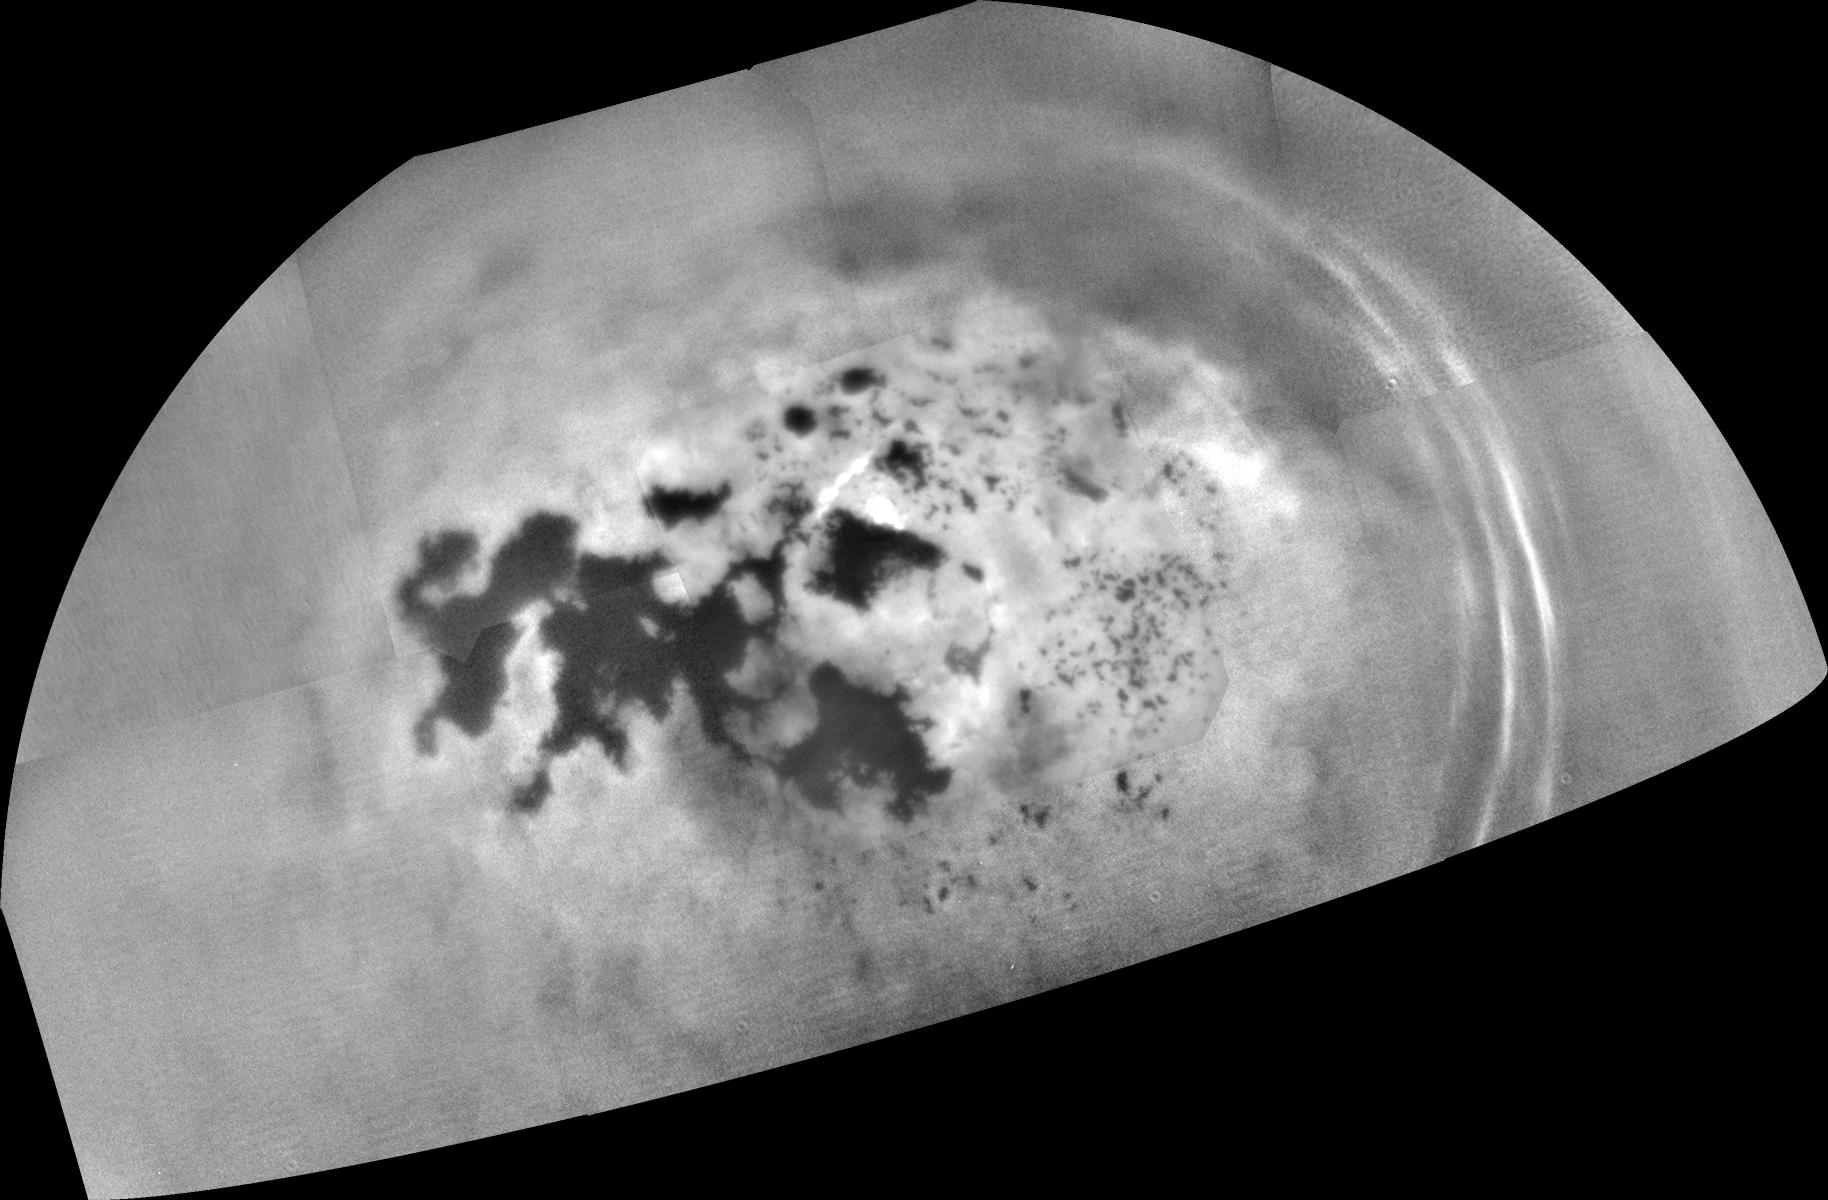 A shot by Cassini of the lakes Kraken Mare and Ligeia Mare near Titan's north pole. Credit: NASA